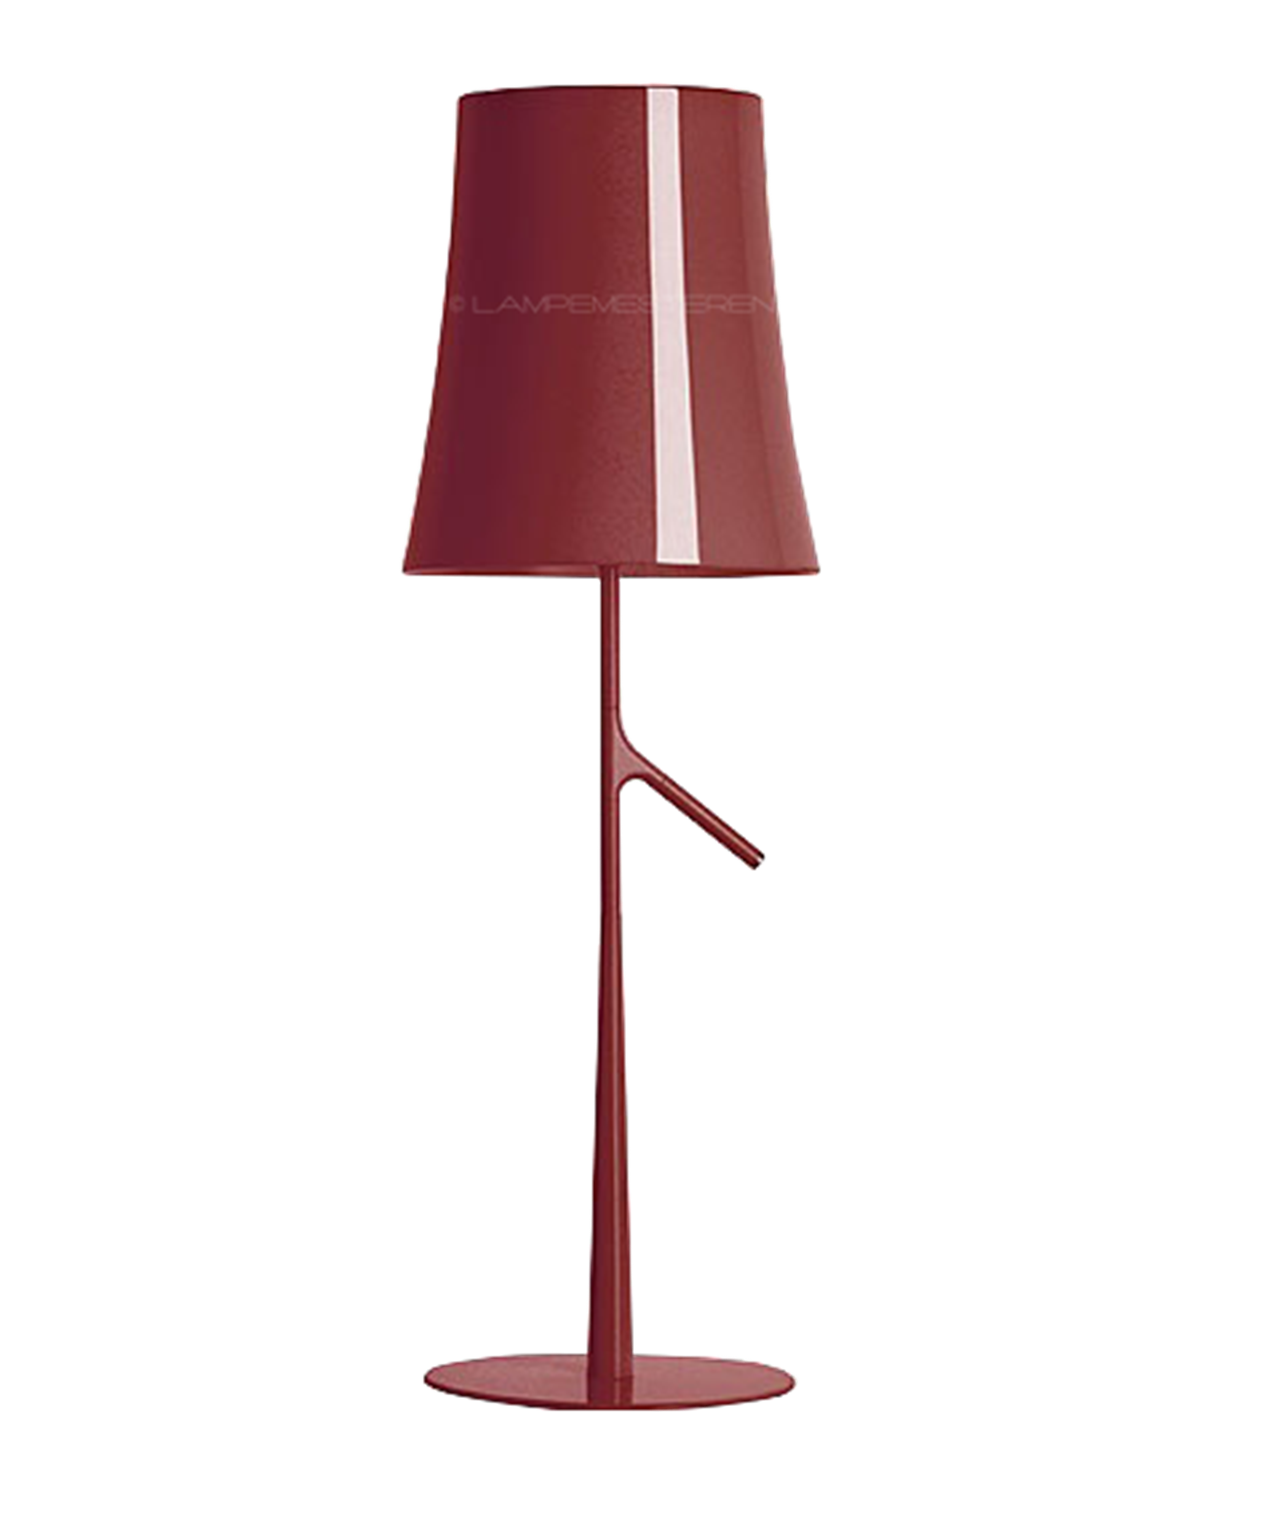 lampe single men Find designer looks for your living room and more at lamps plus shop one of the largest selection of lamps - free shipping & free returns on our best-selling lamp designs.